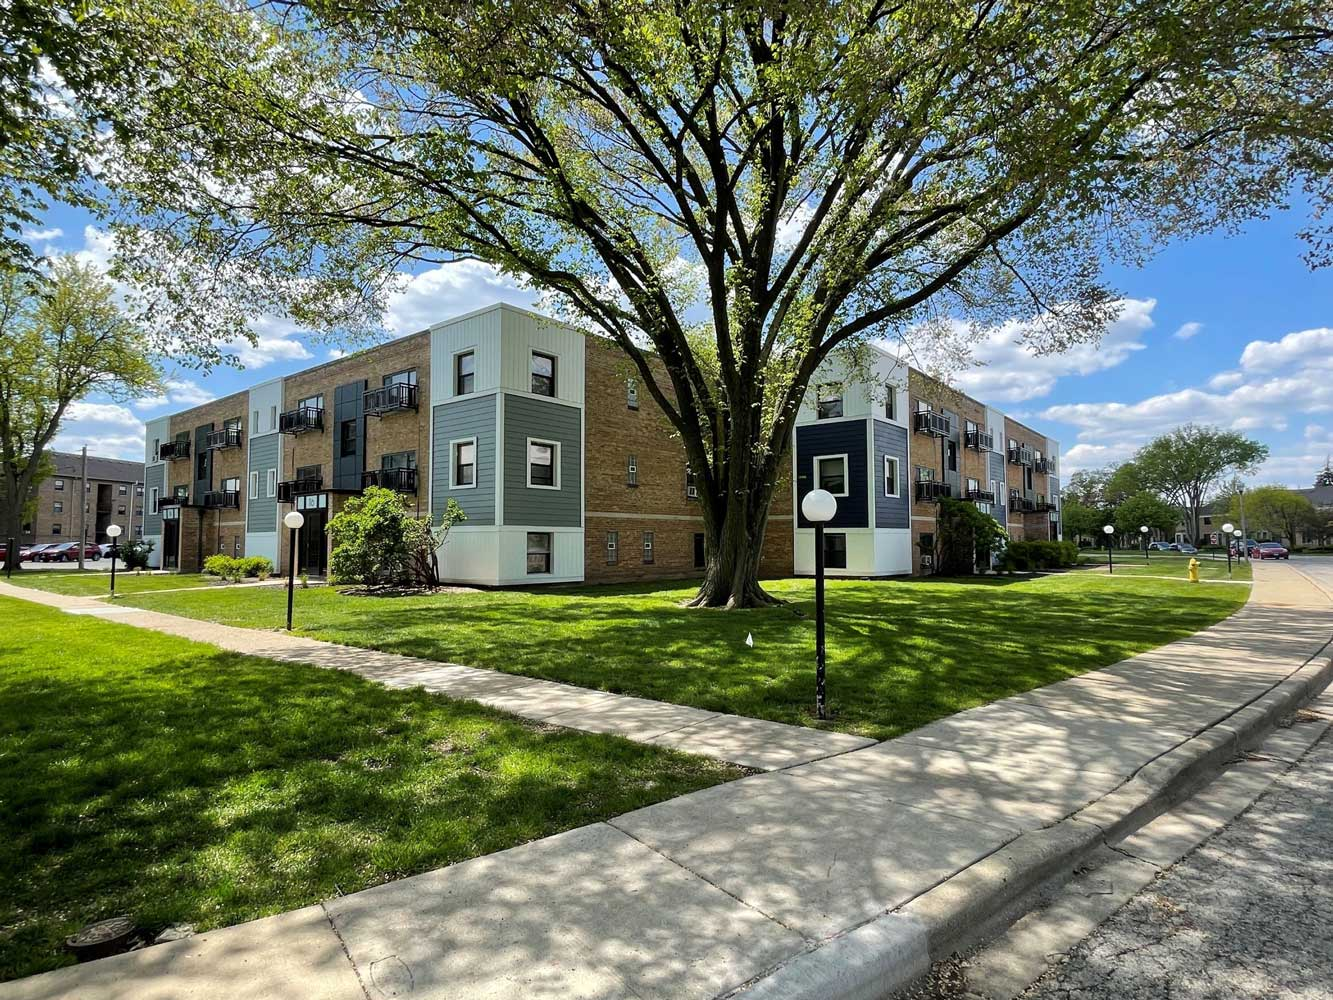 BBQ and Picnic Area Available at Elmhurst Terrace Apartments in Elmhurst, Illinois